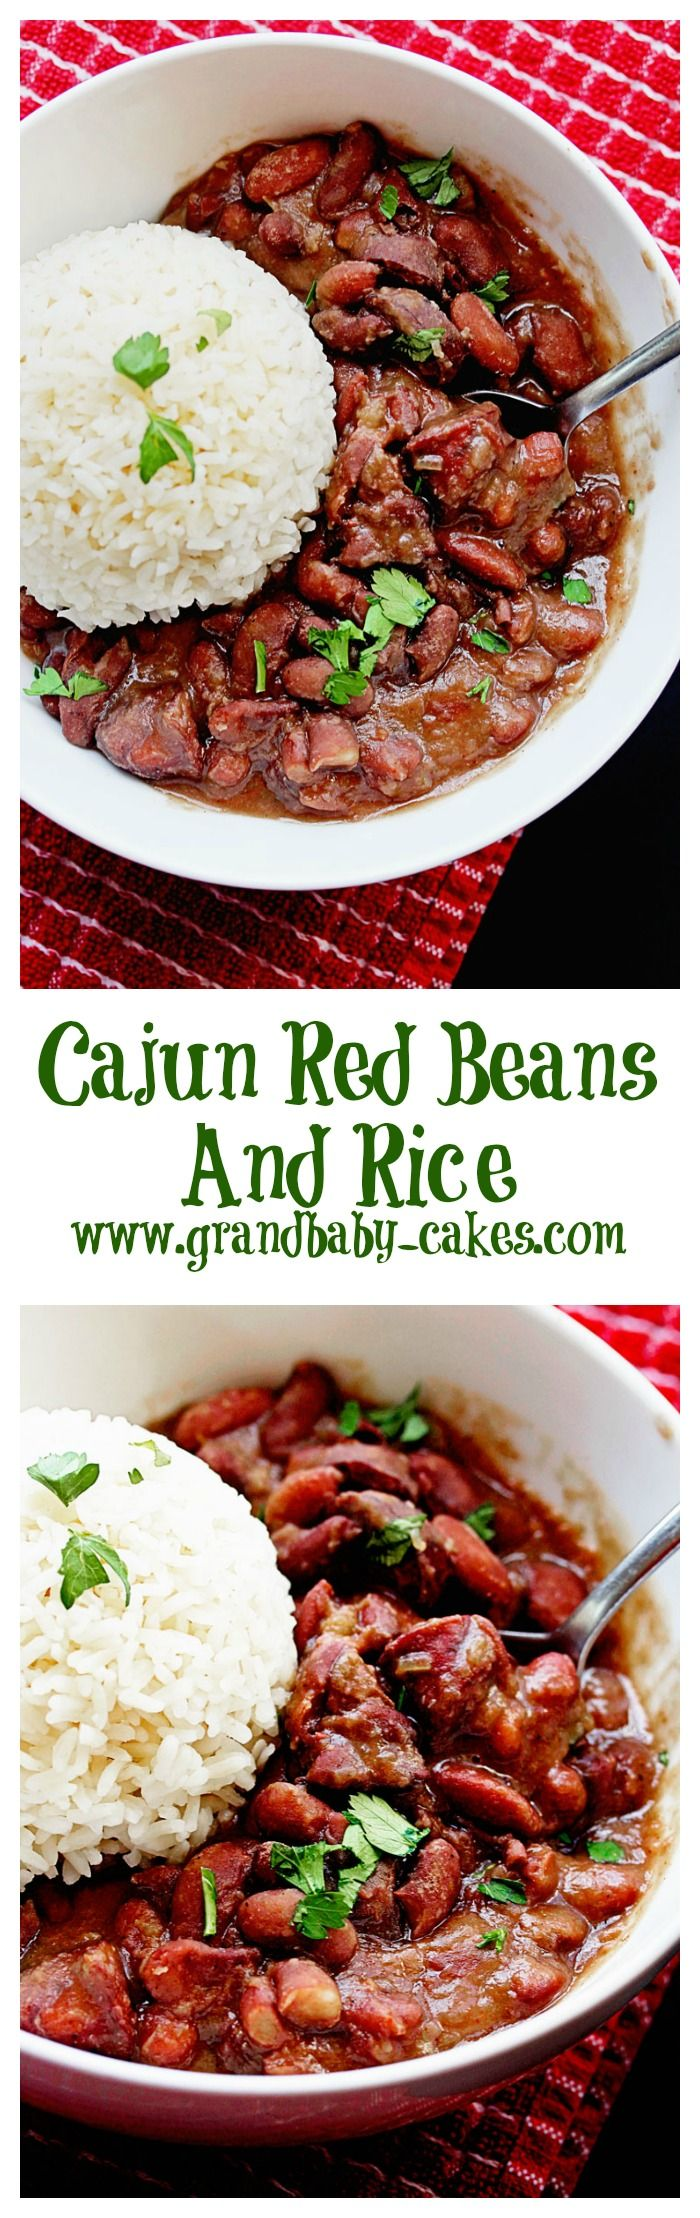 Cajun Red Beans and Rice ~ http://www.grandbaby-cakes.com